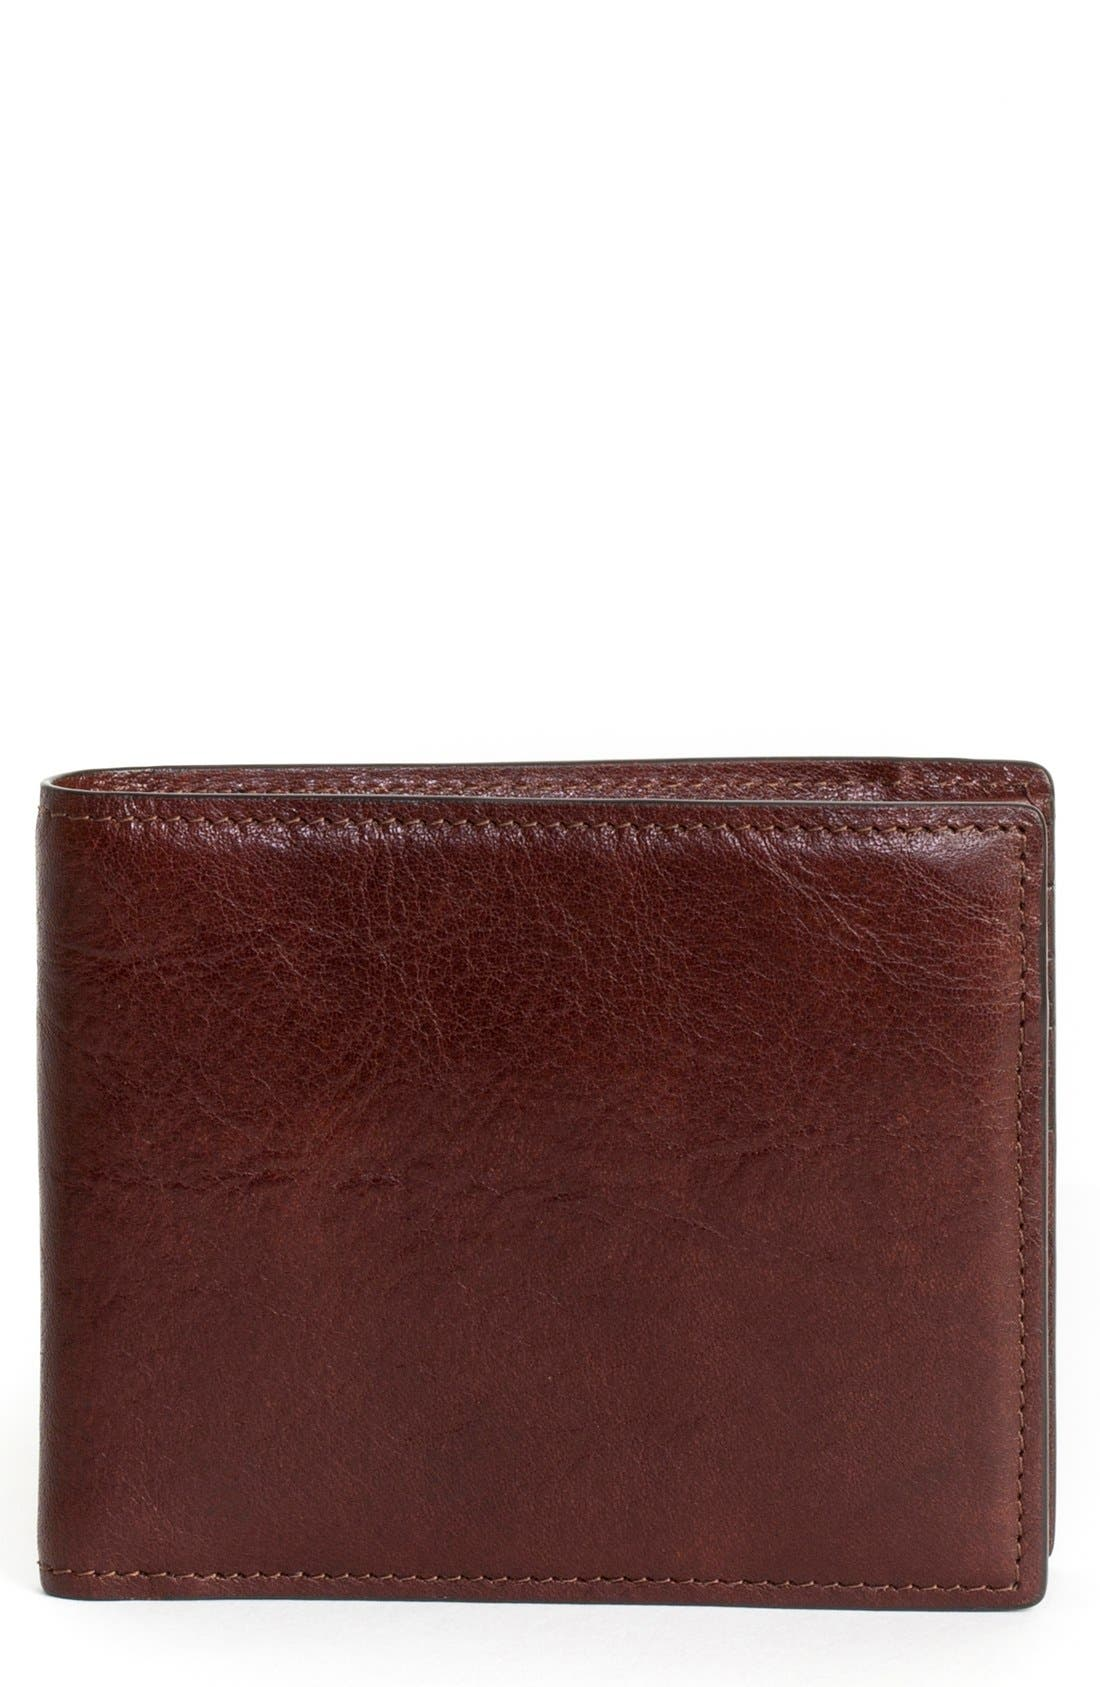 'Becker' Leather Wallet,                         Main,                         color, Whiskey